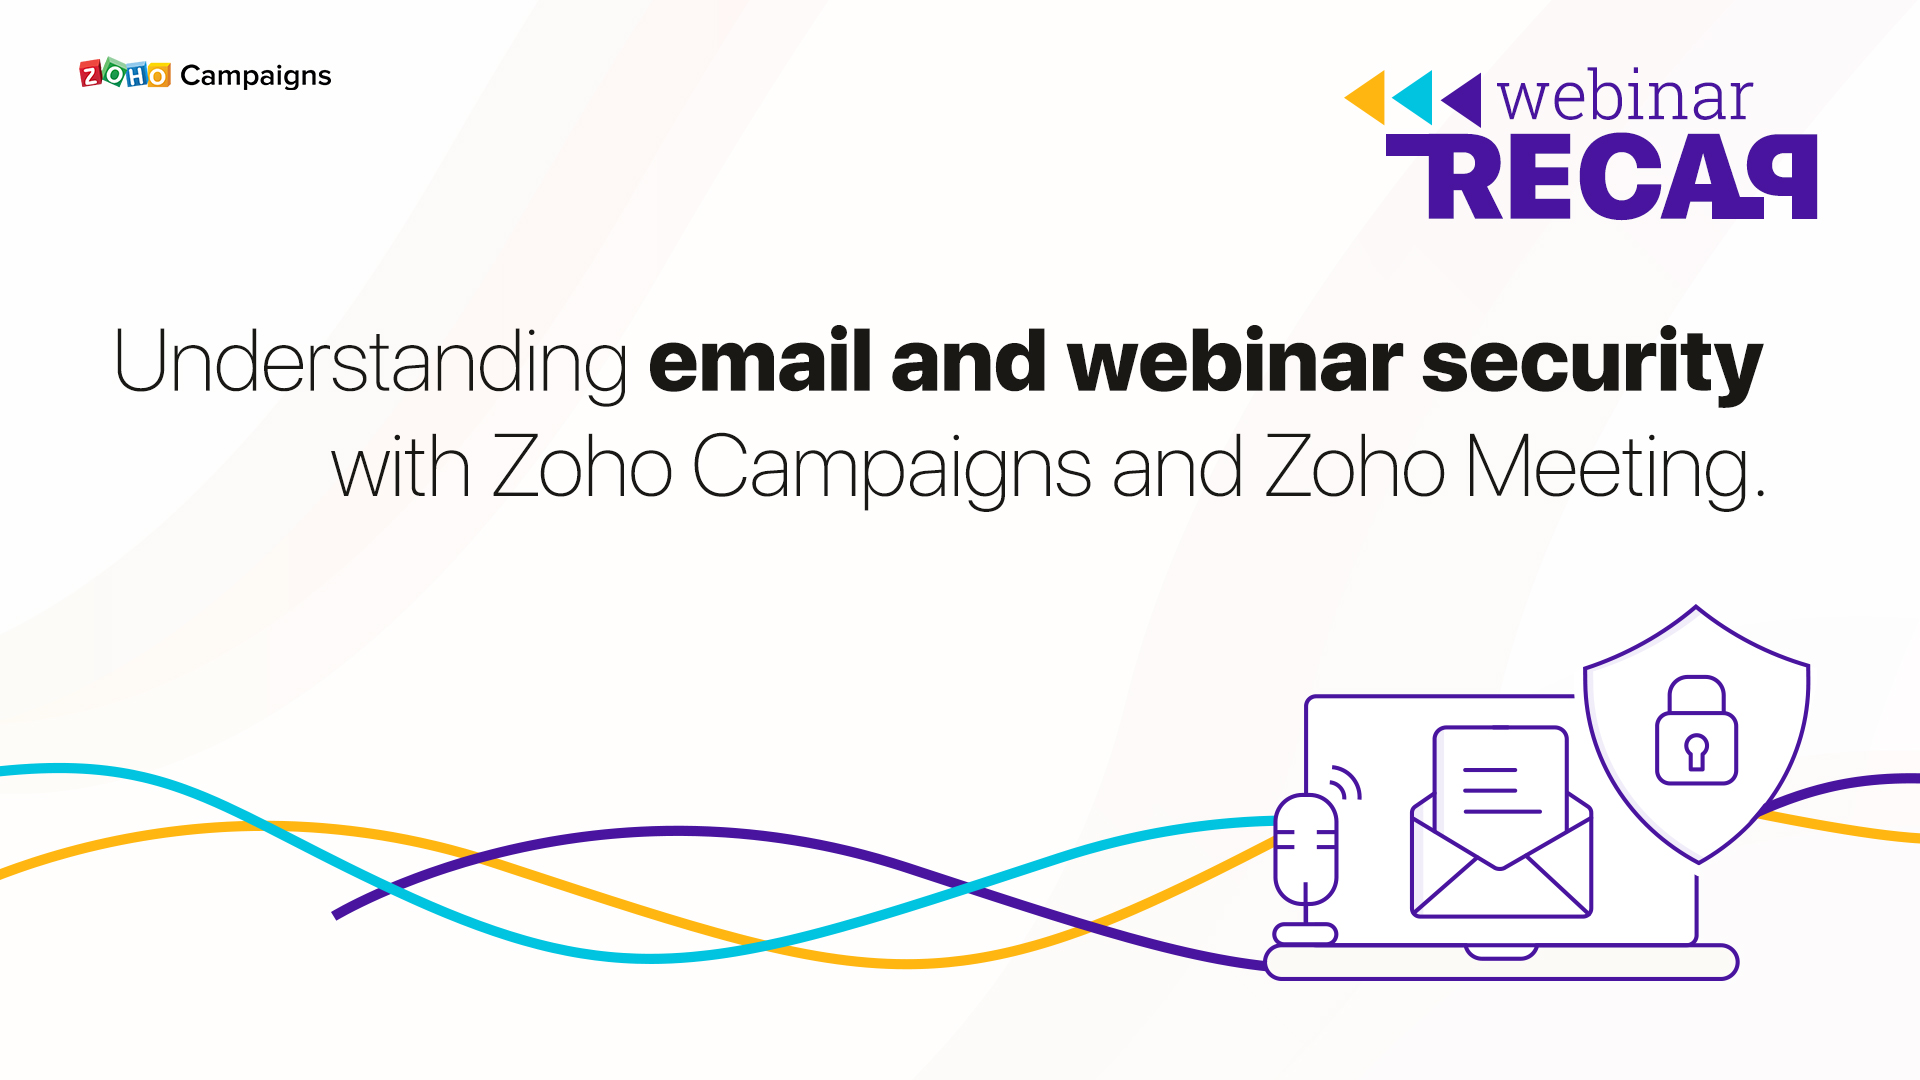 Webinar Recap: Understanding email and webinar security with Zoho Campaigns and Zoho Meeting